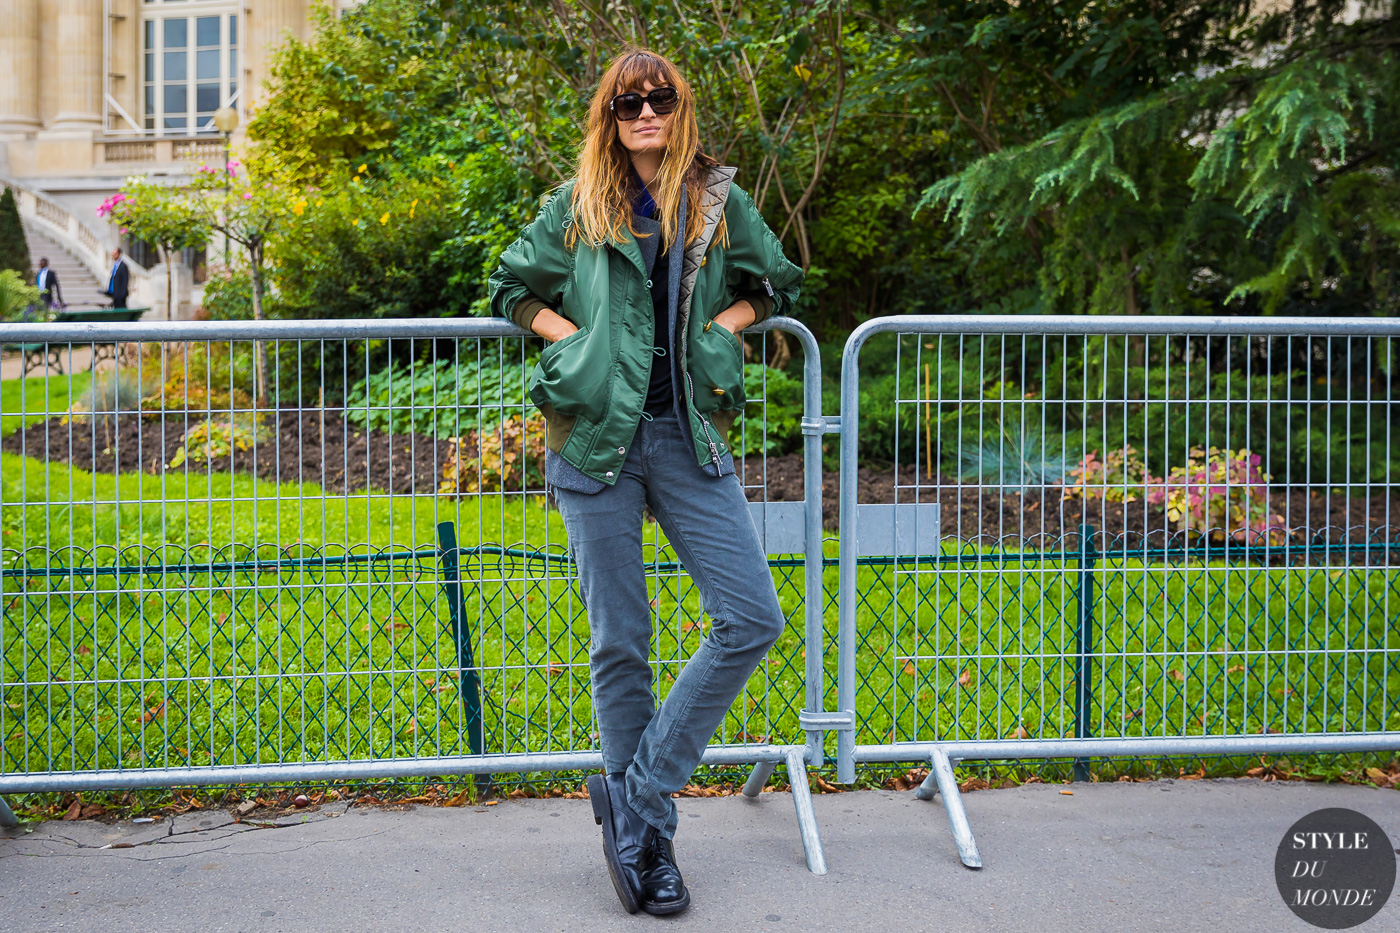 Caroline de Maigret by STYLEDUMONDE Street Style Fashion Photography_48A0078